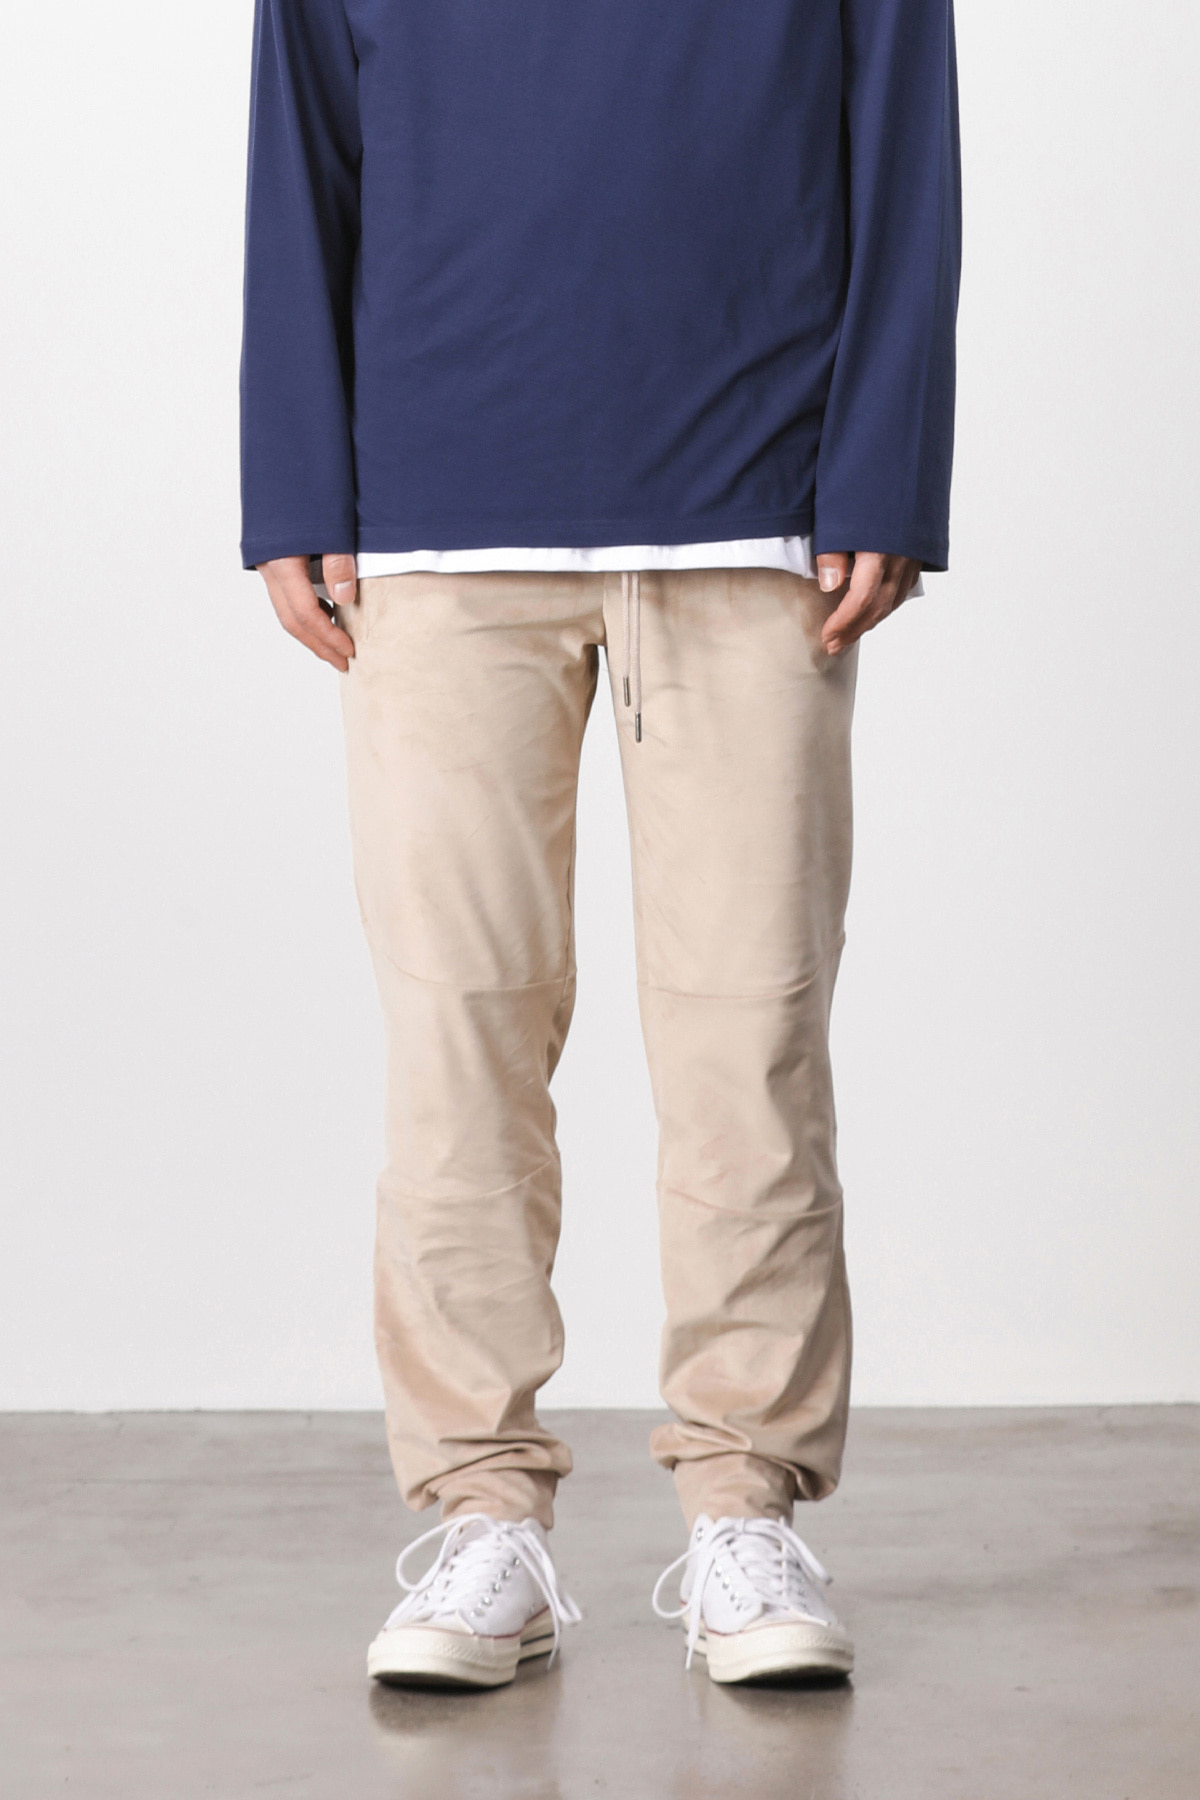 페이탈리즘 #jp05 Suede loose fit pants (beige)